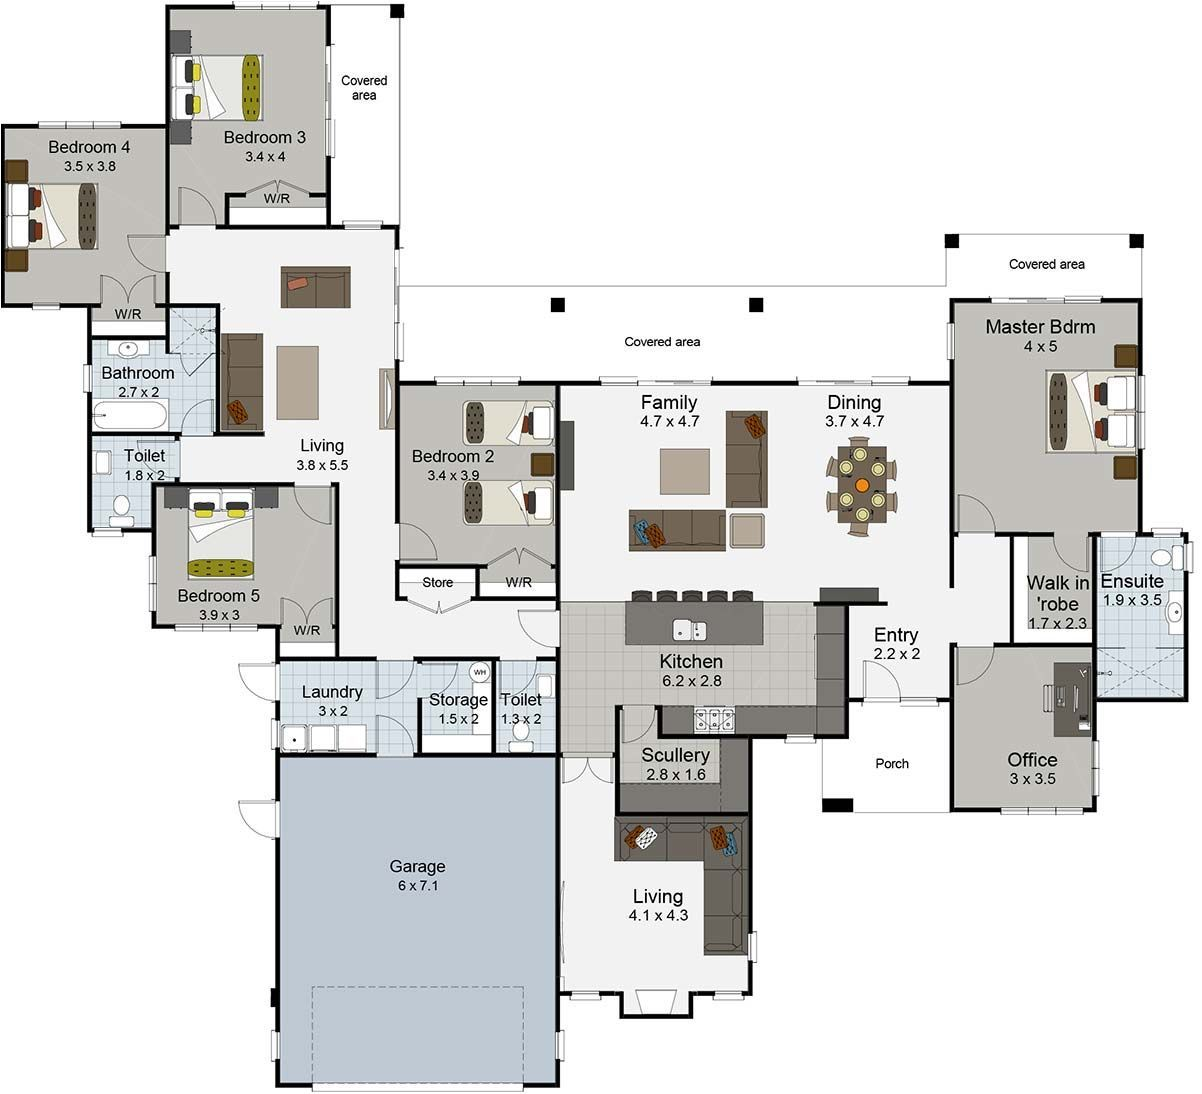 Spectacular Large House Floor Plans Nz From Landmark Homes Landmark Homes 5 Bedroom House Plans 2 Stor 5 Bedroom House Plans House Layouts House Floor Plans